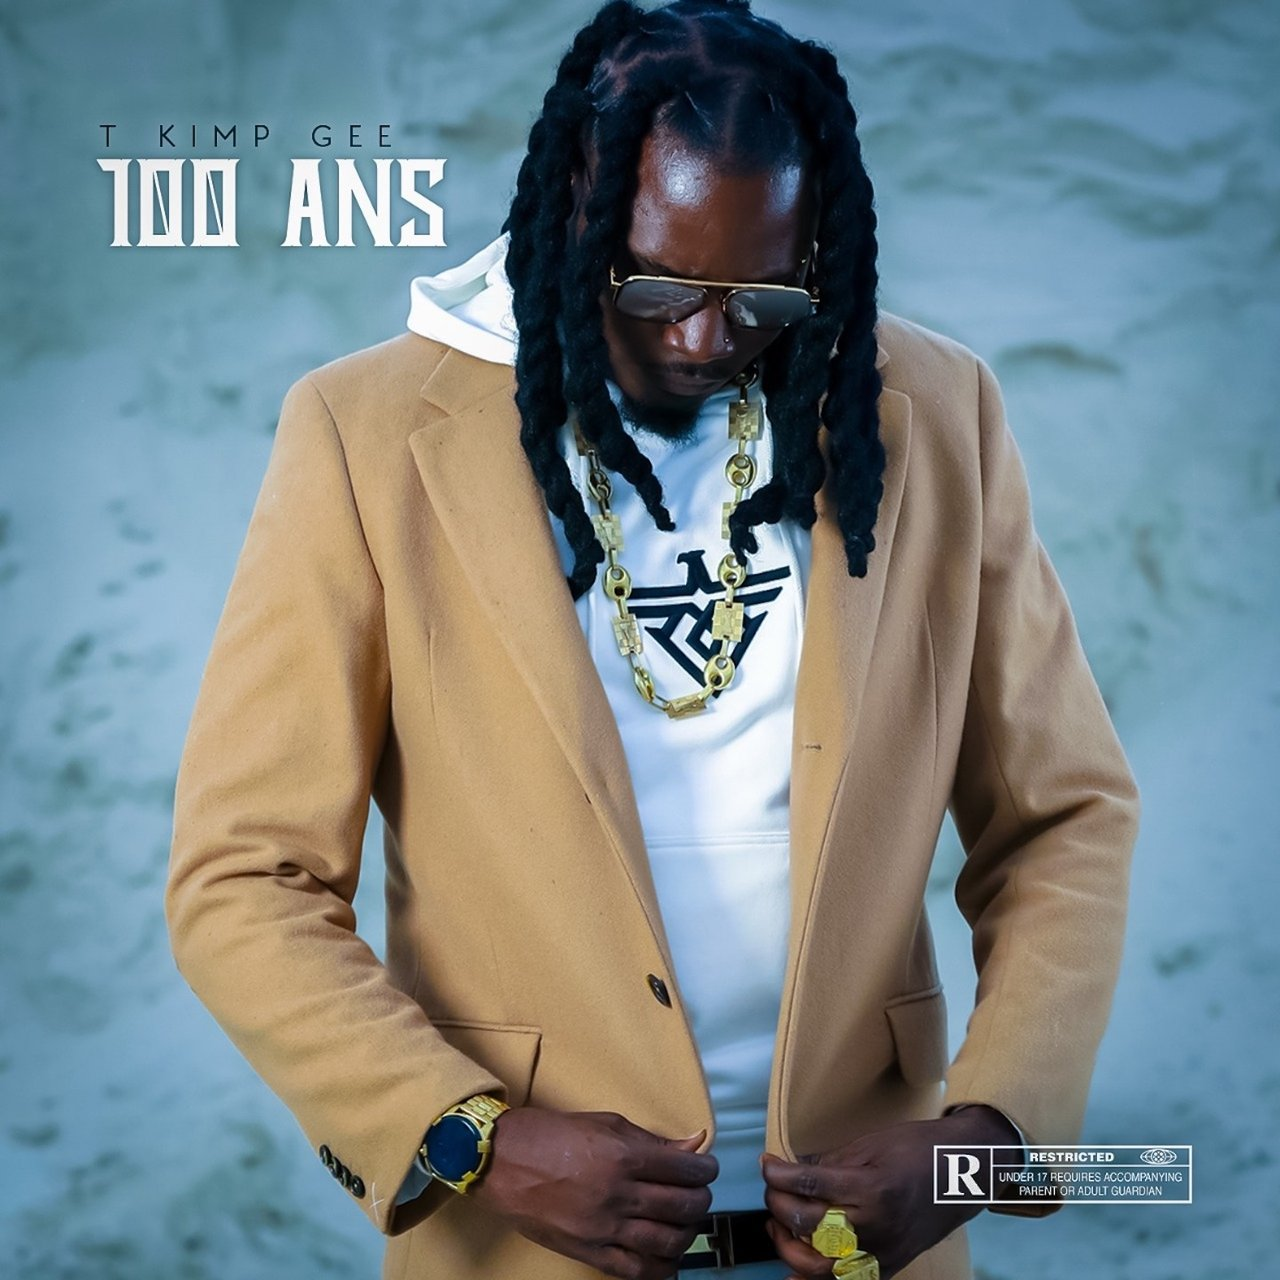 T Kimp Gee - 100 Ans (Cover)